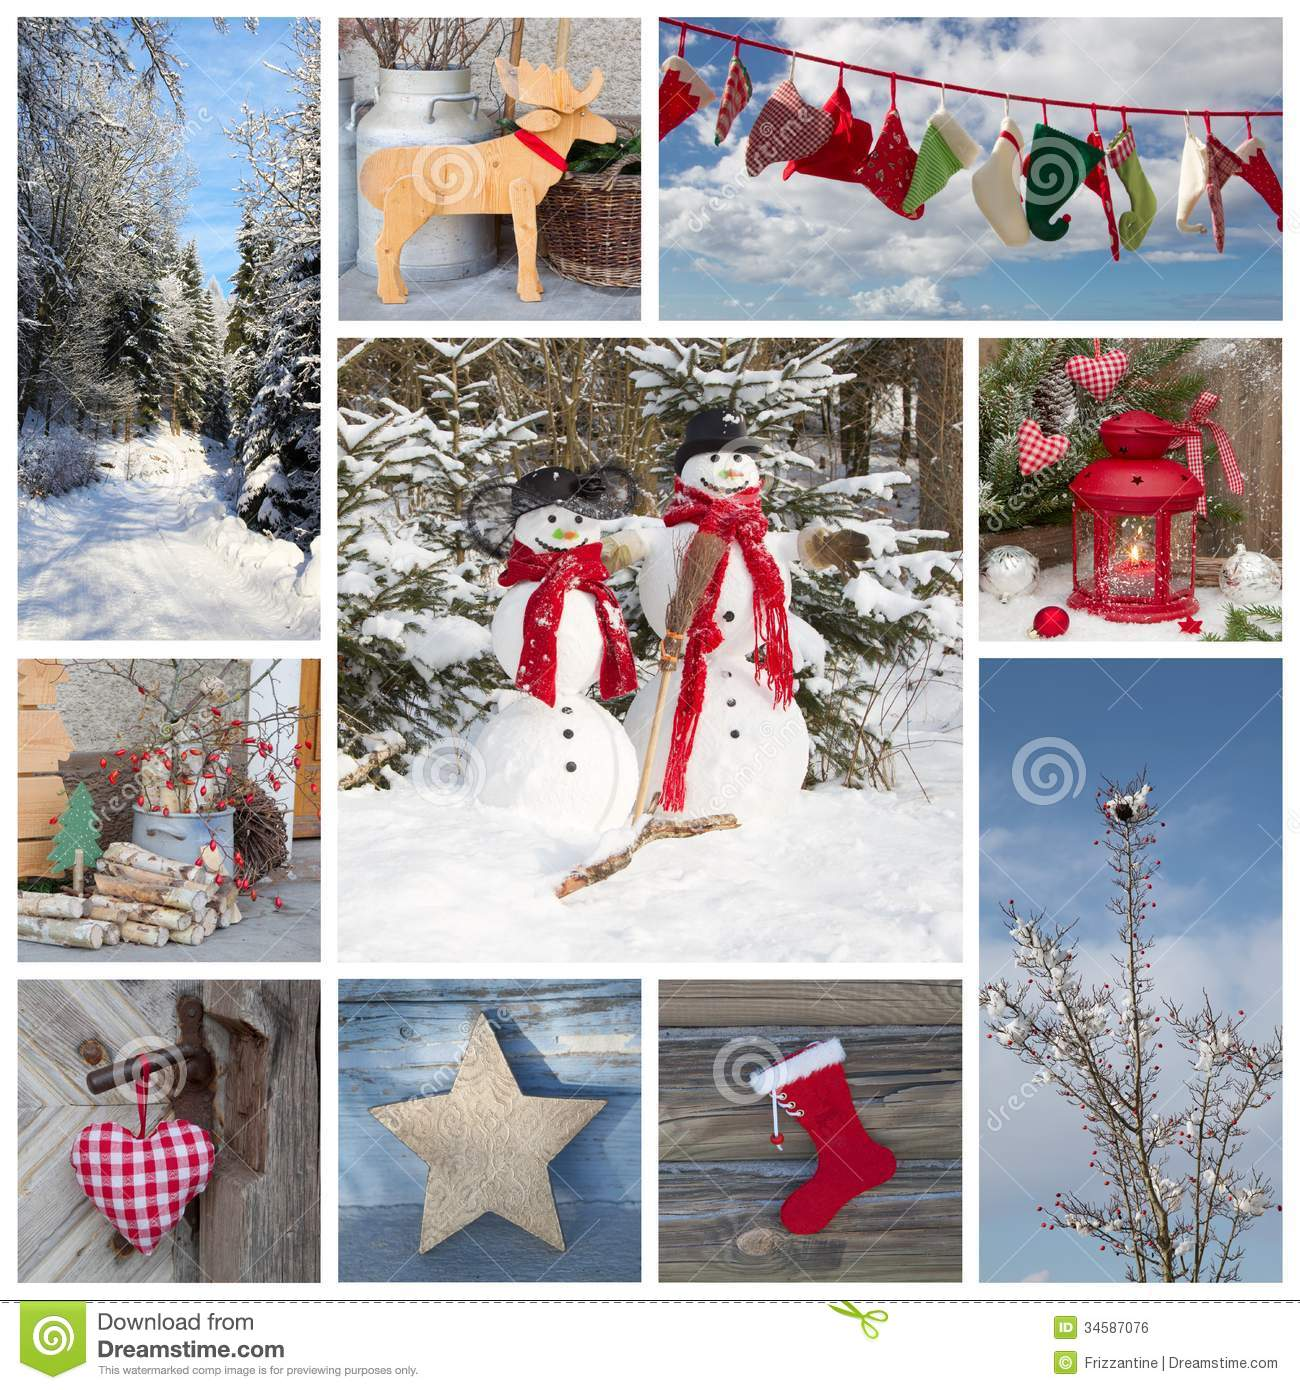 Outdoor christmas decoration in country style in blue and red for a